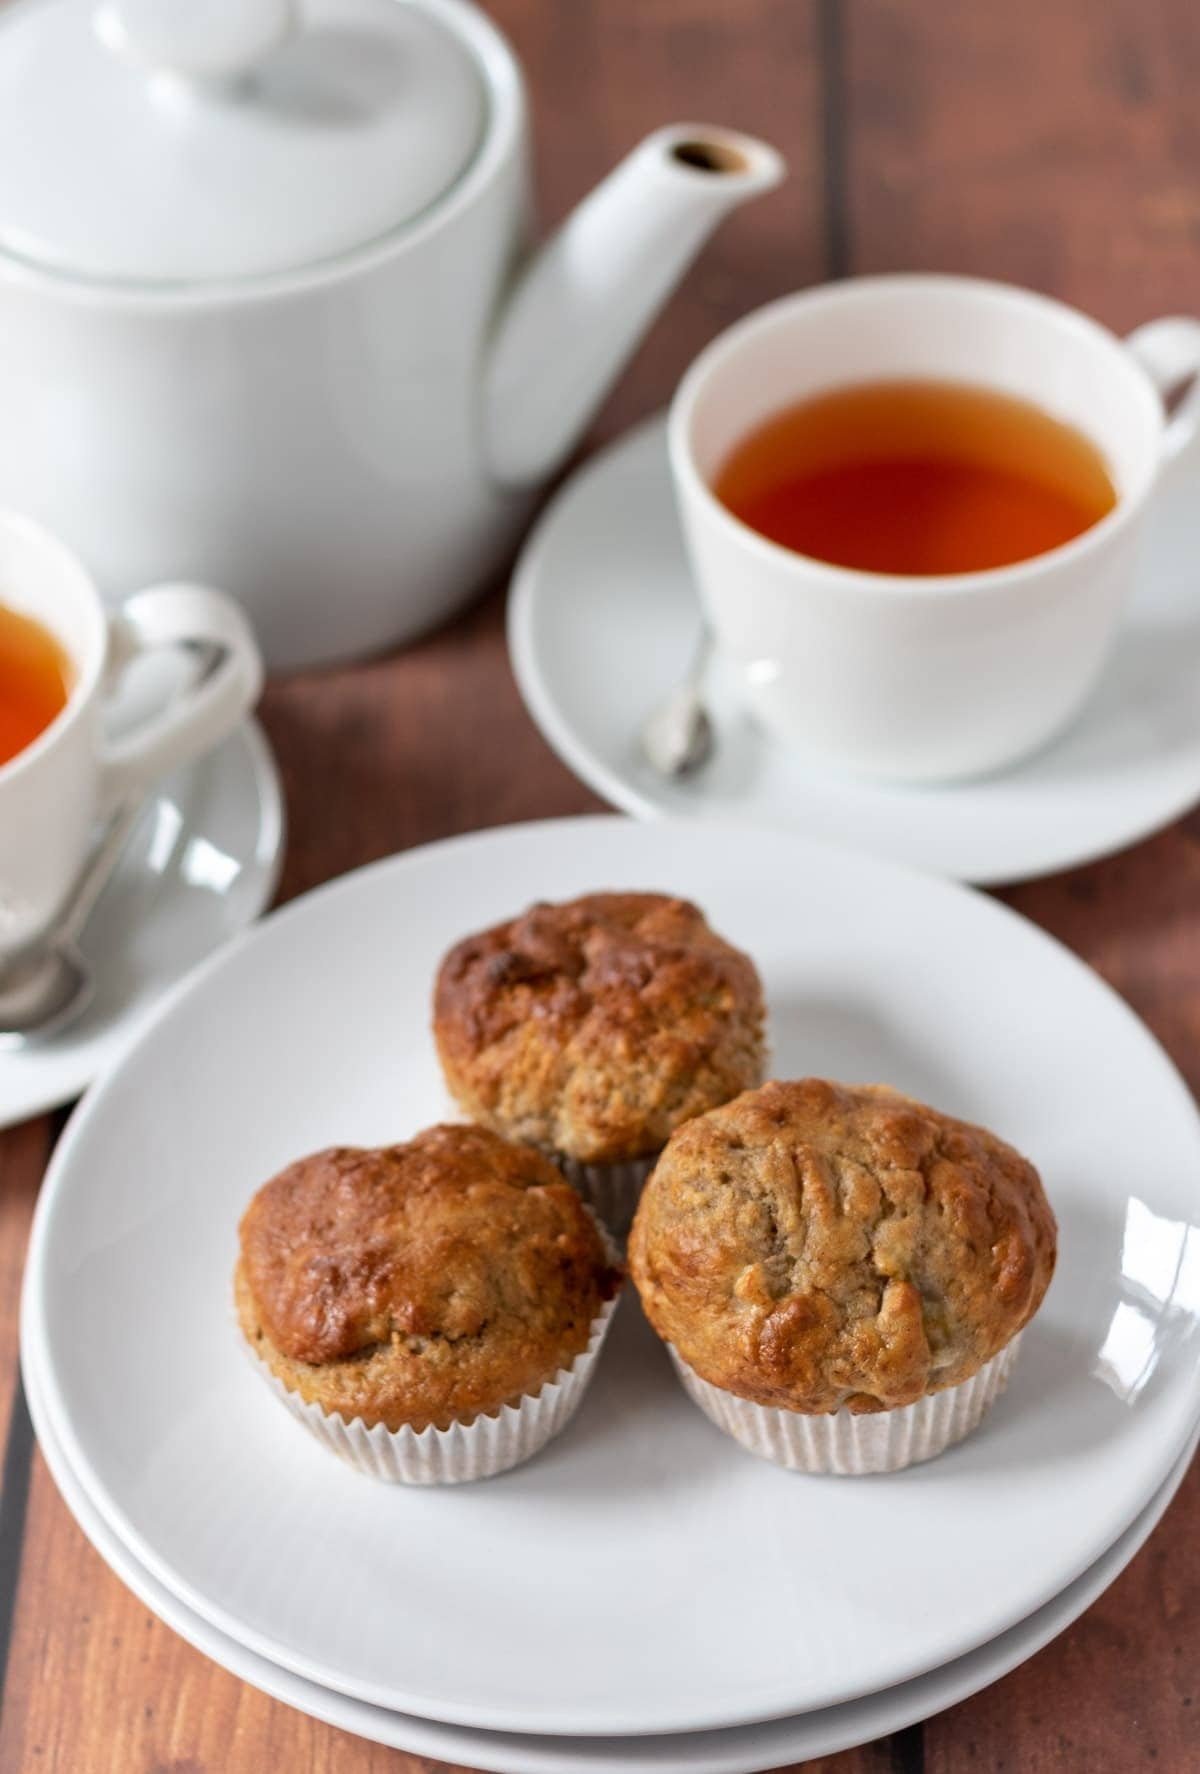 Three banana bread muffins on a plate with two cups of tea and a tea pot in the background.